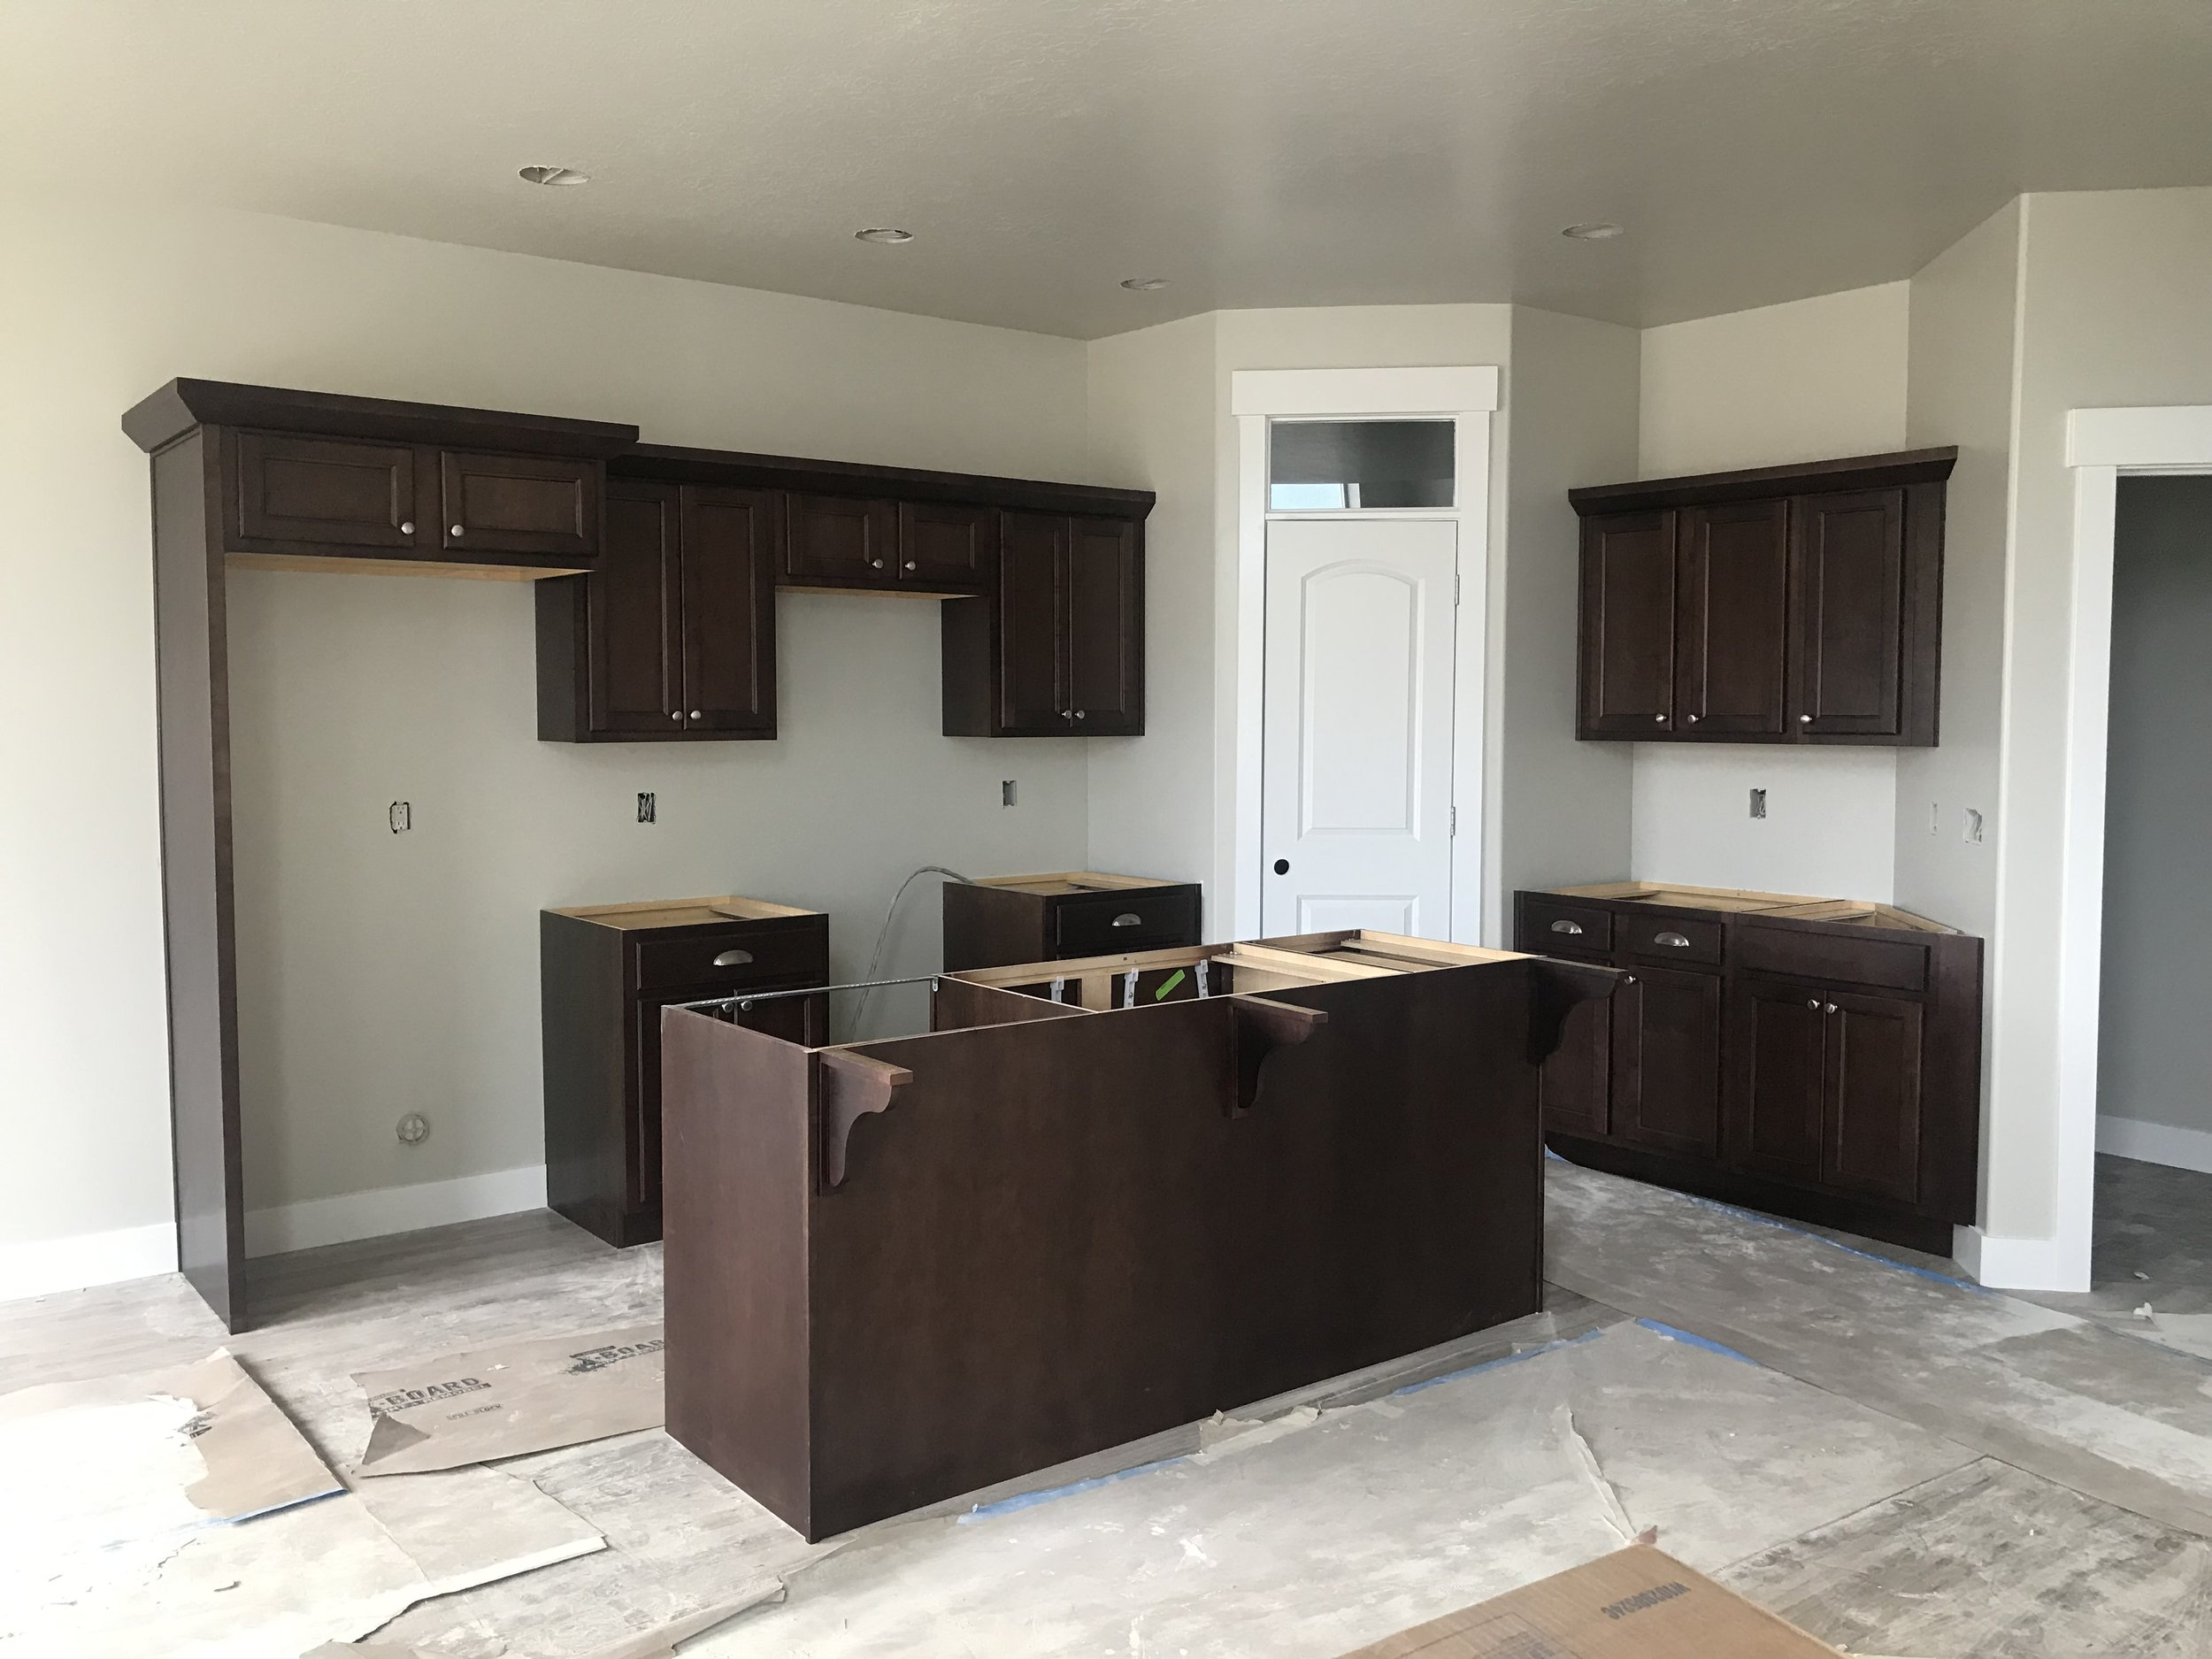 Cabinets installed in the kitchen. They're the same color in the bathrooms as well.